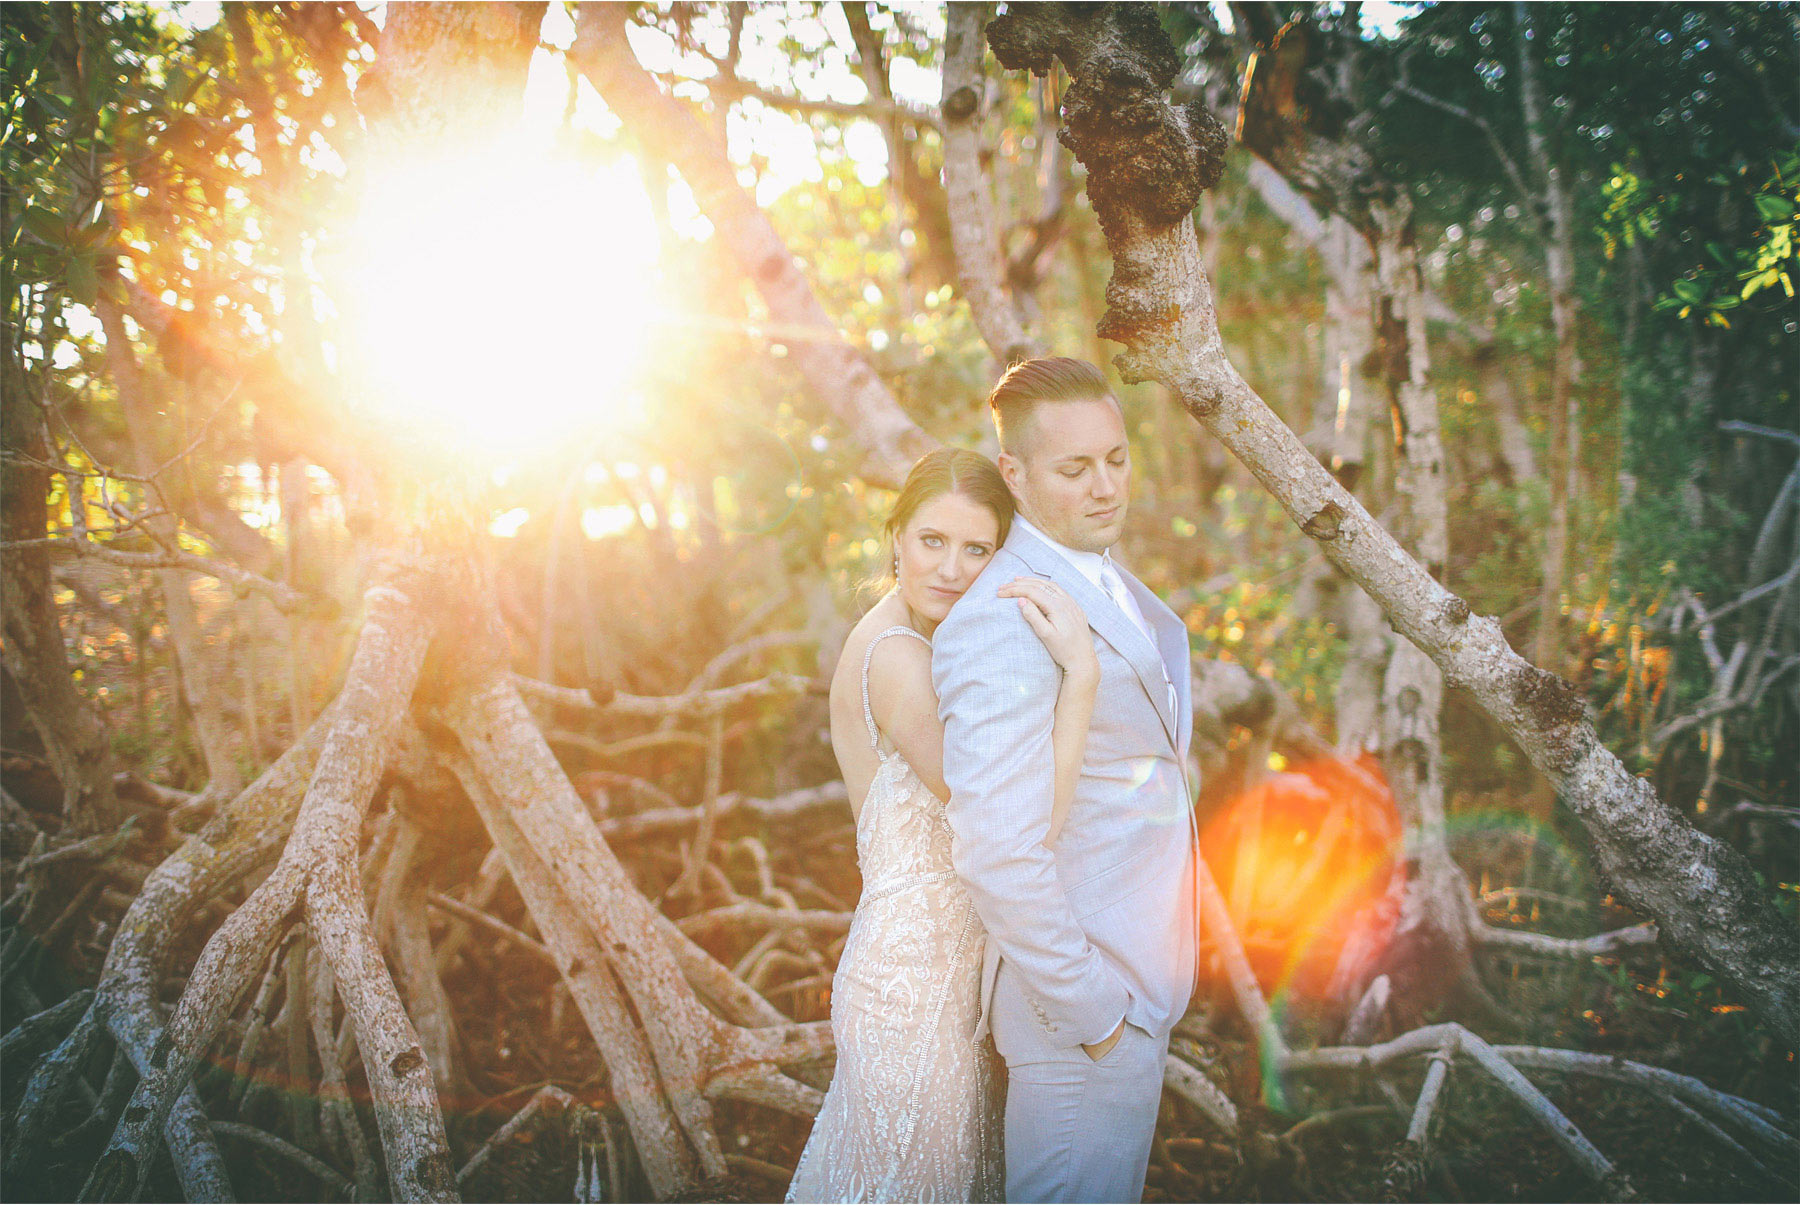 27-Key-Largo-Florida-Keys-Wedding-Photographer-by-Andrew-Vick-Photography-Playa-Largo-Resort-and-Spa-Hotel-Destination-Winter-Wear-It-Again-Bride-Groom-Trees-Sunflares-Embrace-Carrie-and-Brian.jpg